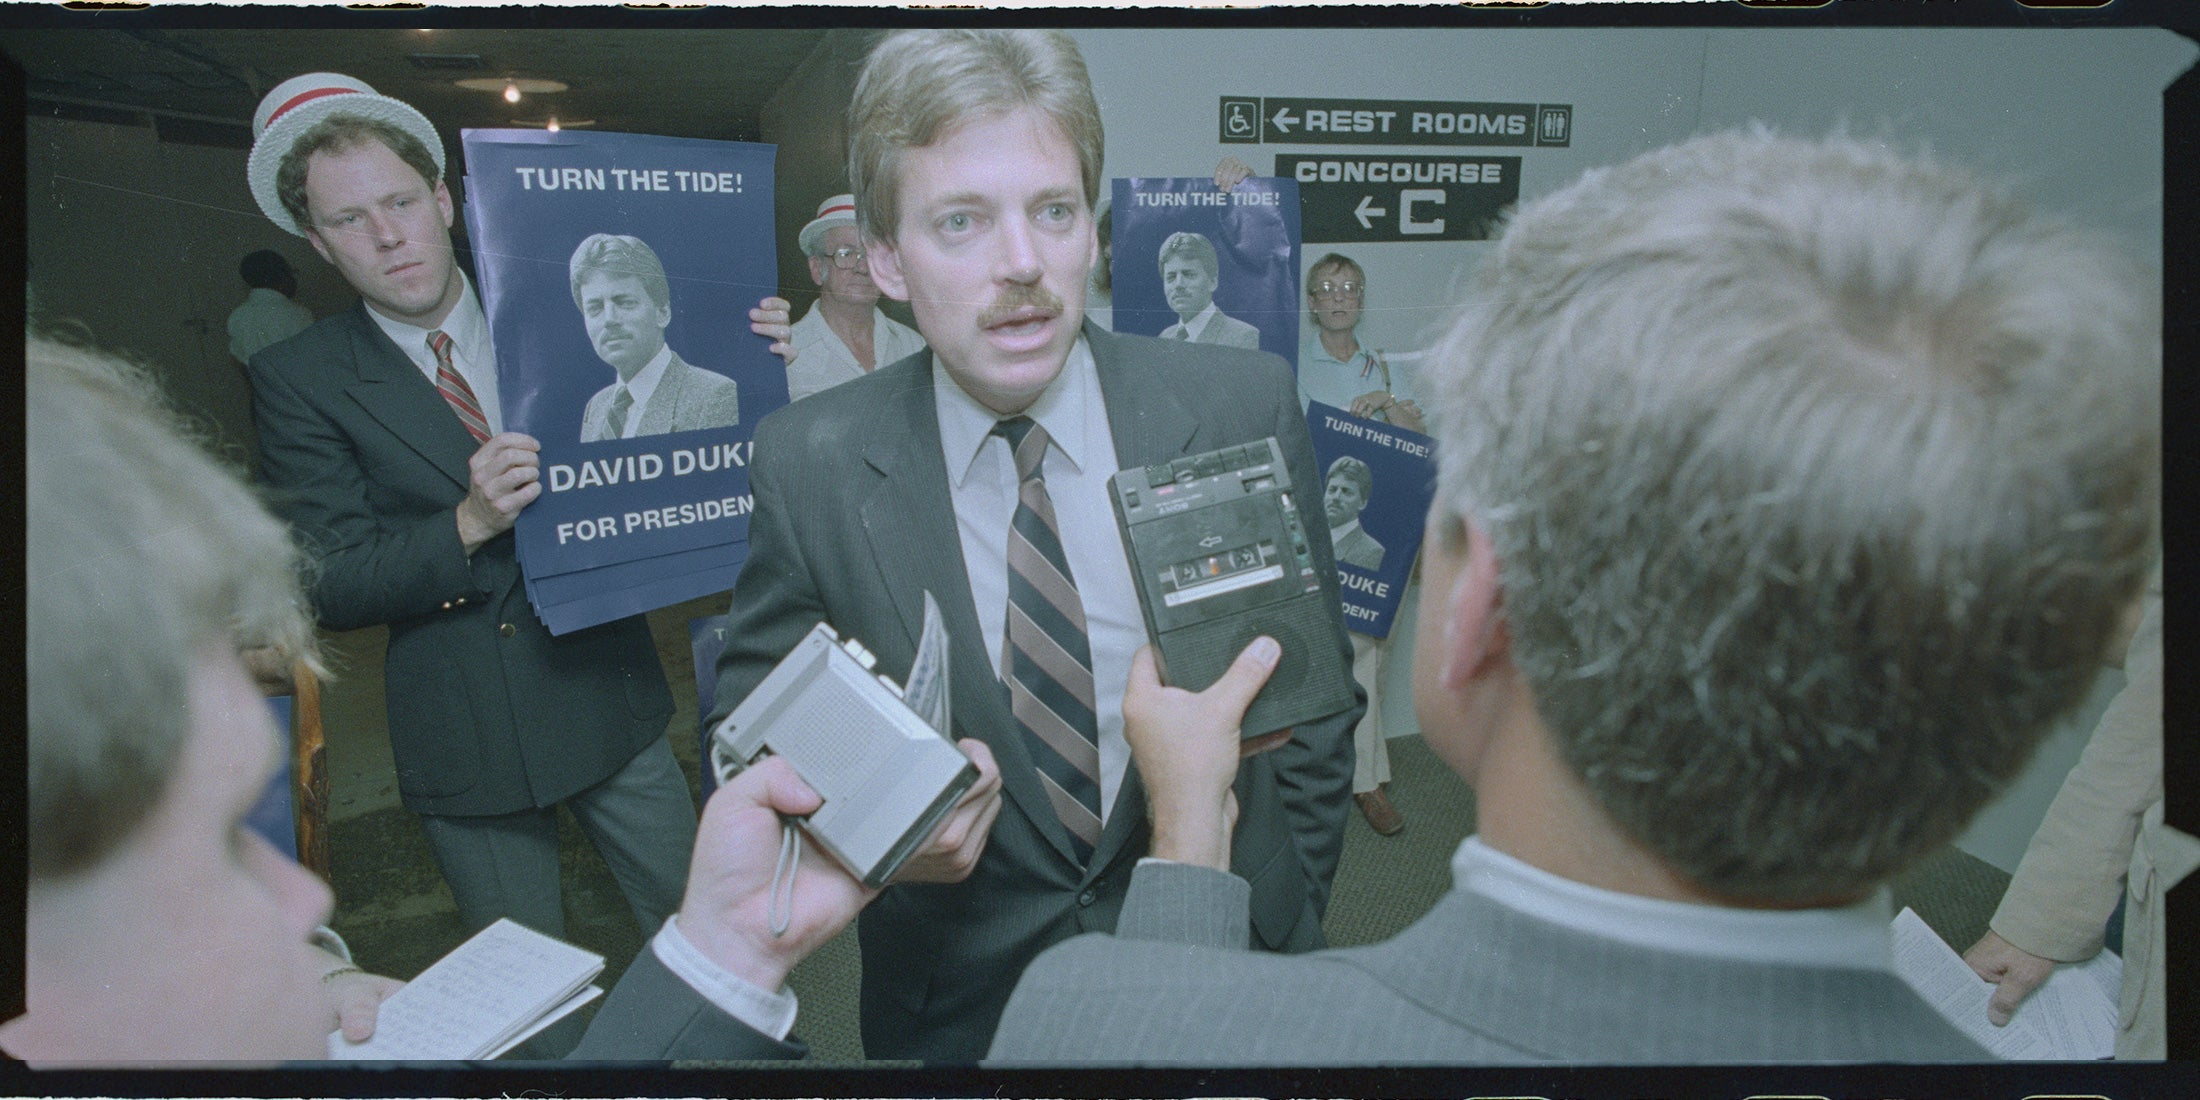 """David Duke surrounded by the press and supporters carrying """"David Duke for President"""" signs"""